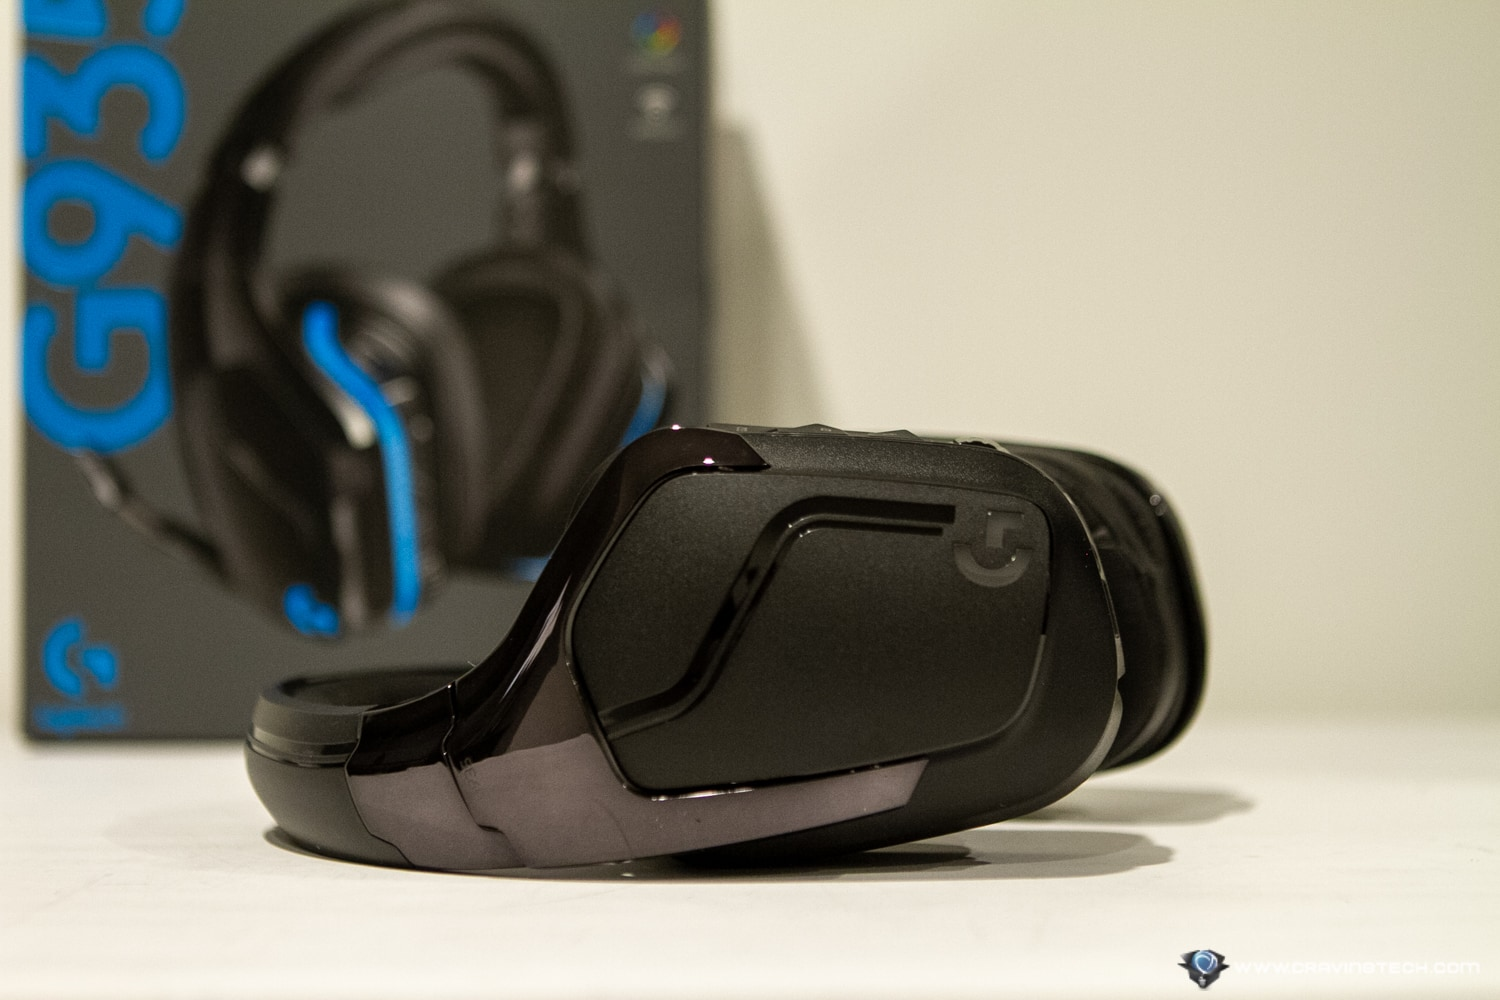 Logitech G935 Review